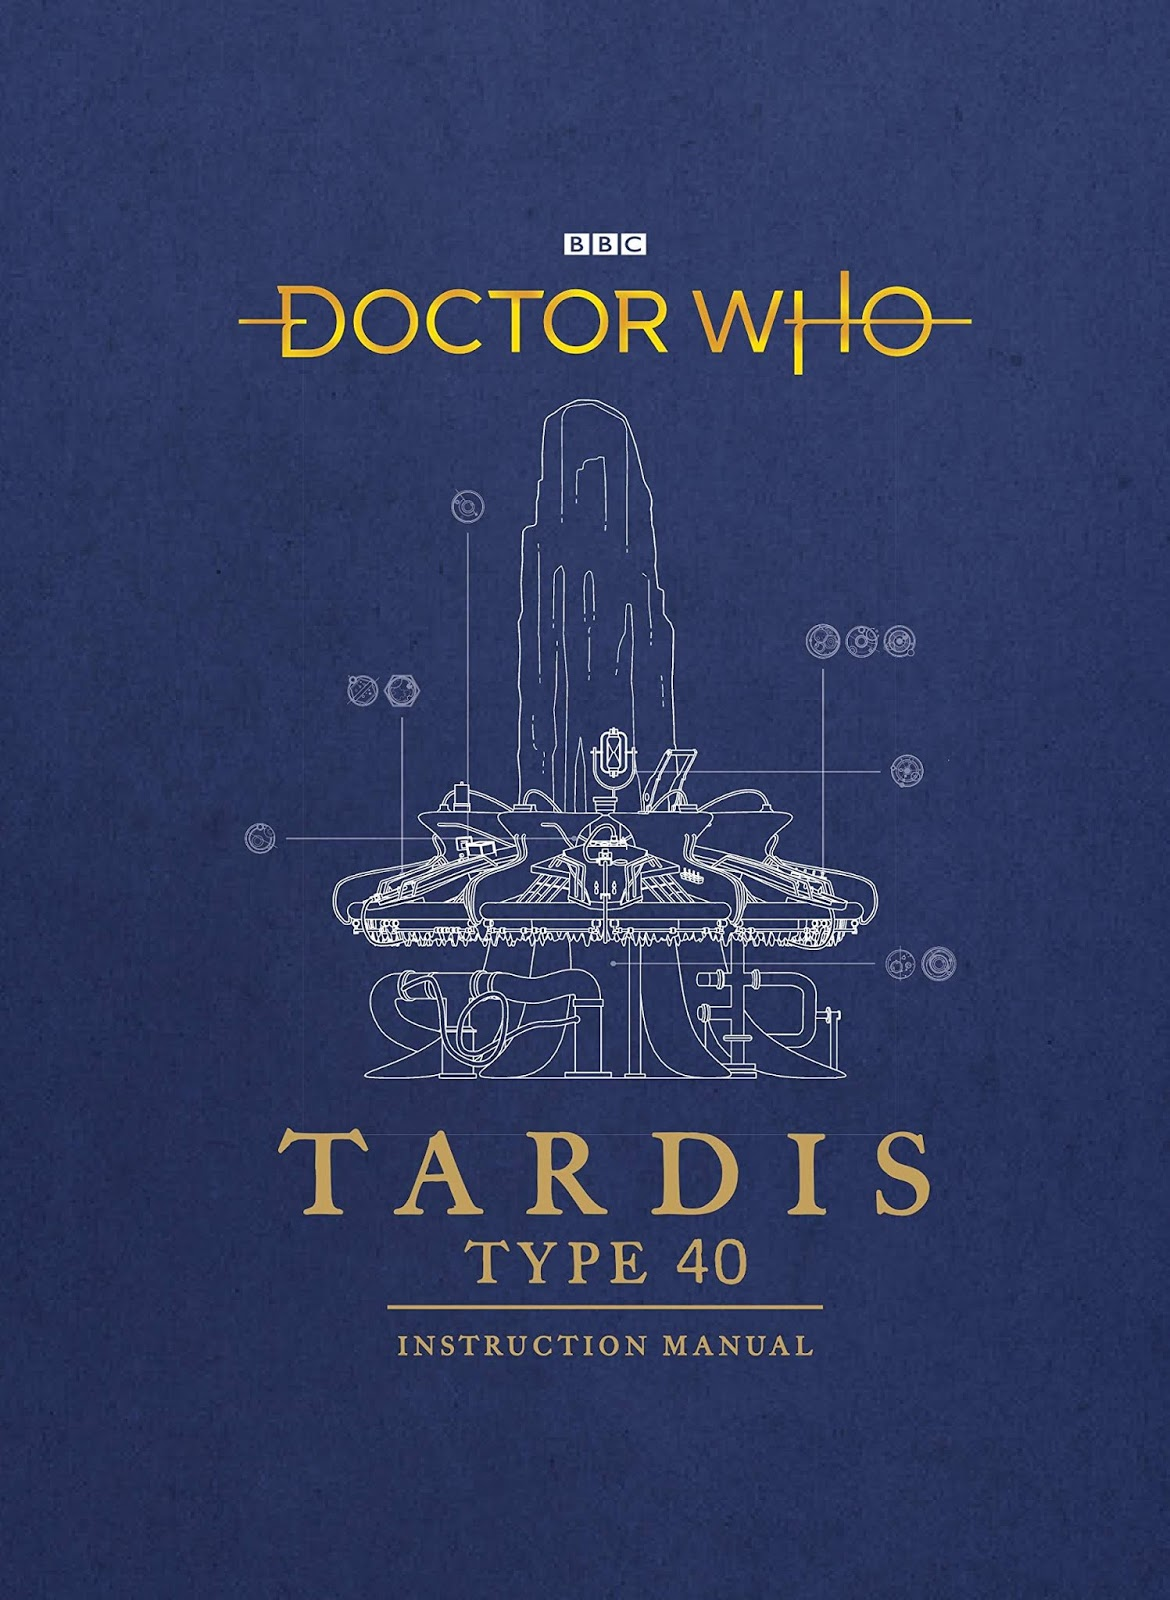 c5ab5824ff9e Sneak Peek At The New Doctor Who Book - TARDIS Type Forty Instruction Manual